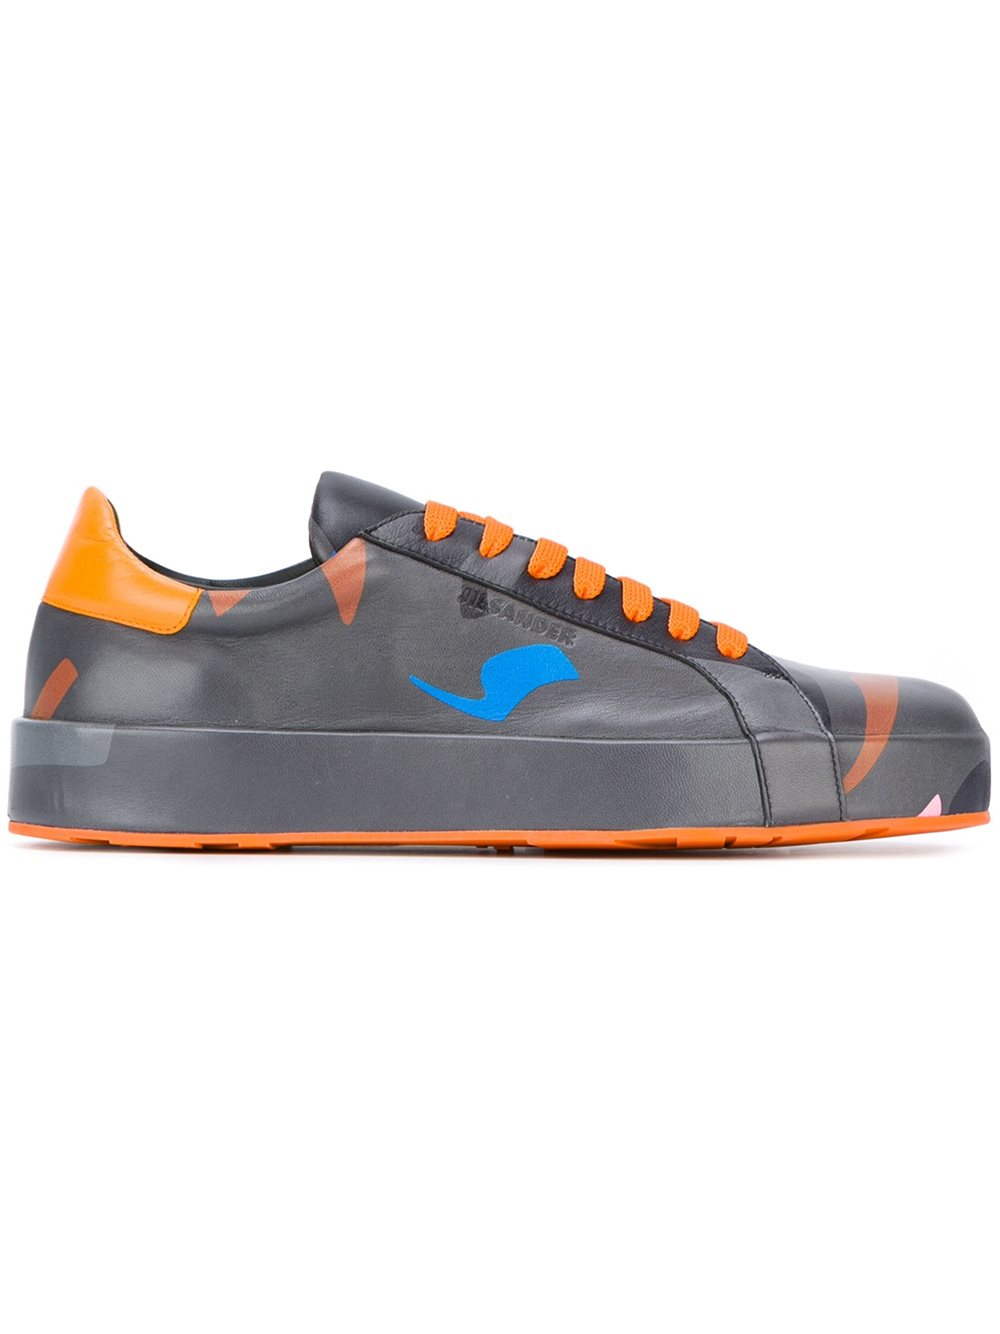 Finish Line Athletic Shoes. Step up your style with the bright colors and on-trend styles in the Finish Line athletic shoes collection. Find something for any outfit no matter what hue you're matching.